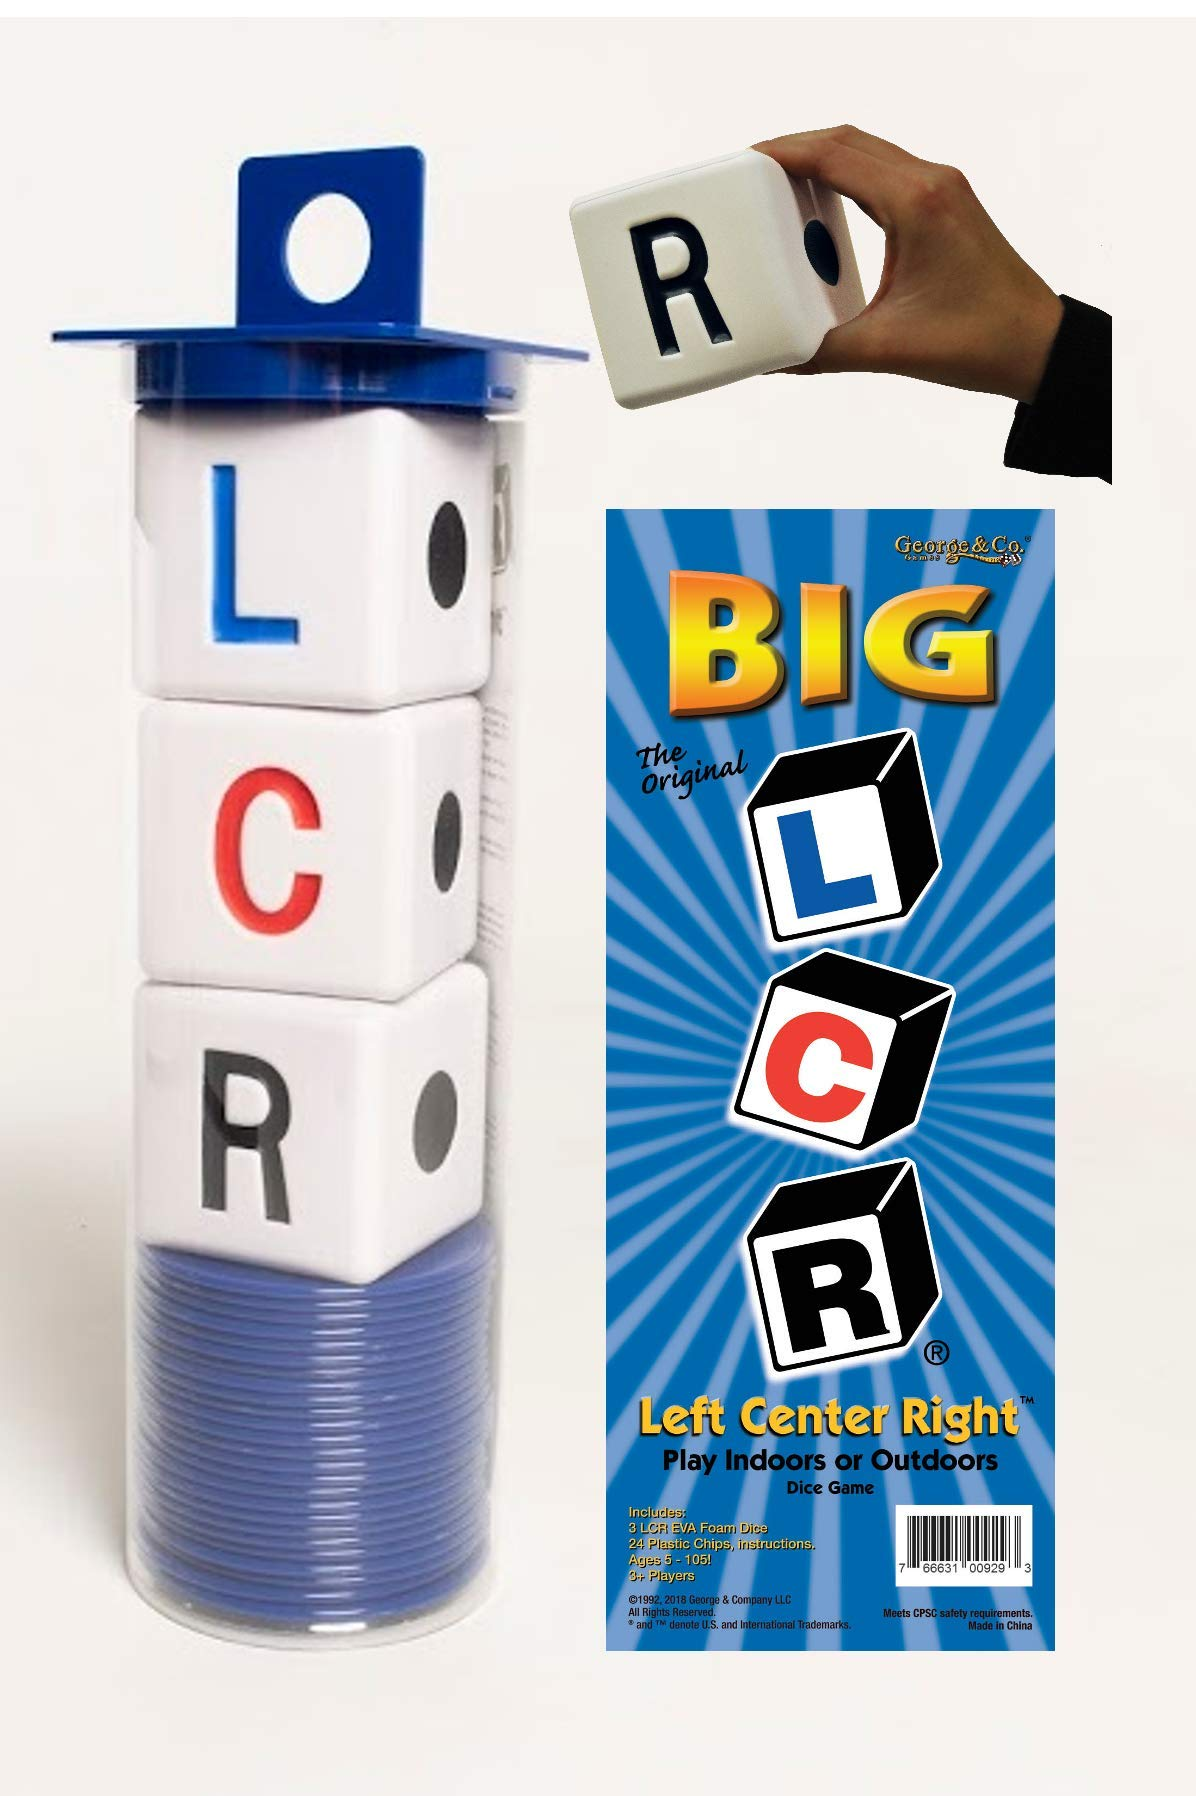 LCR Big Left Center Right Dice Game - Classic (Blue) 18'' H